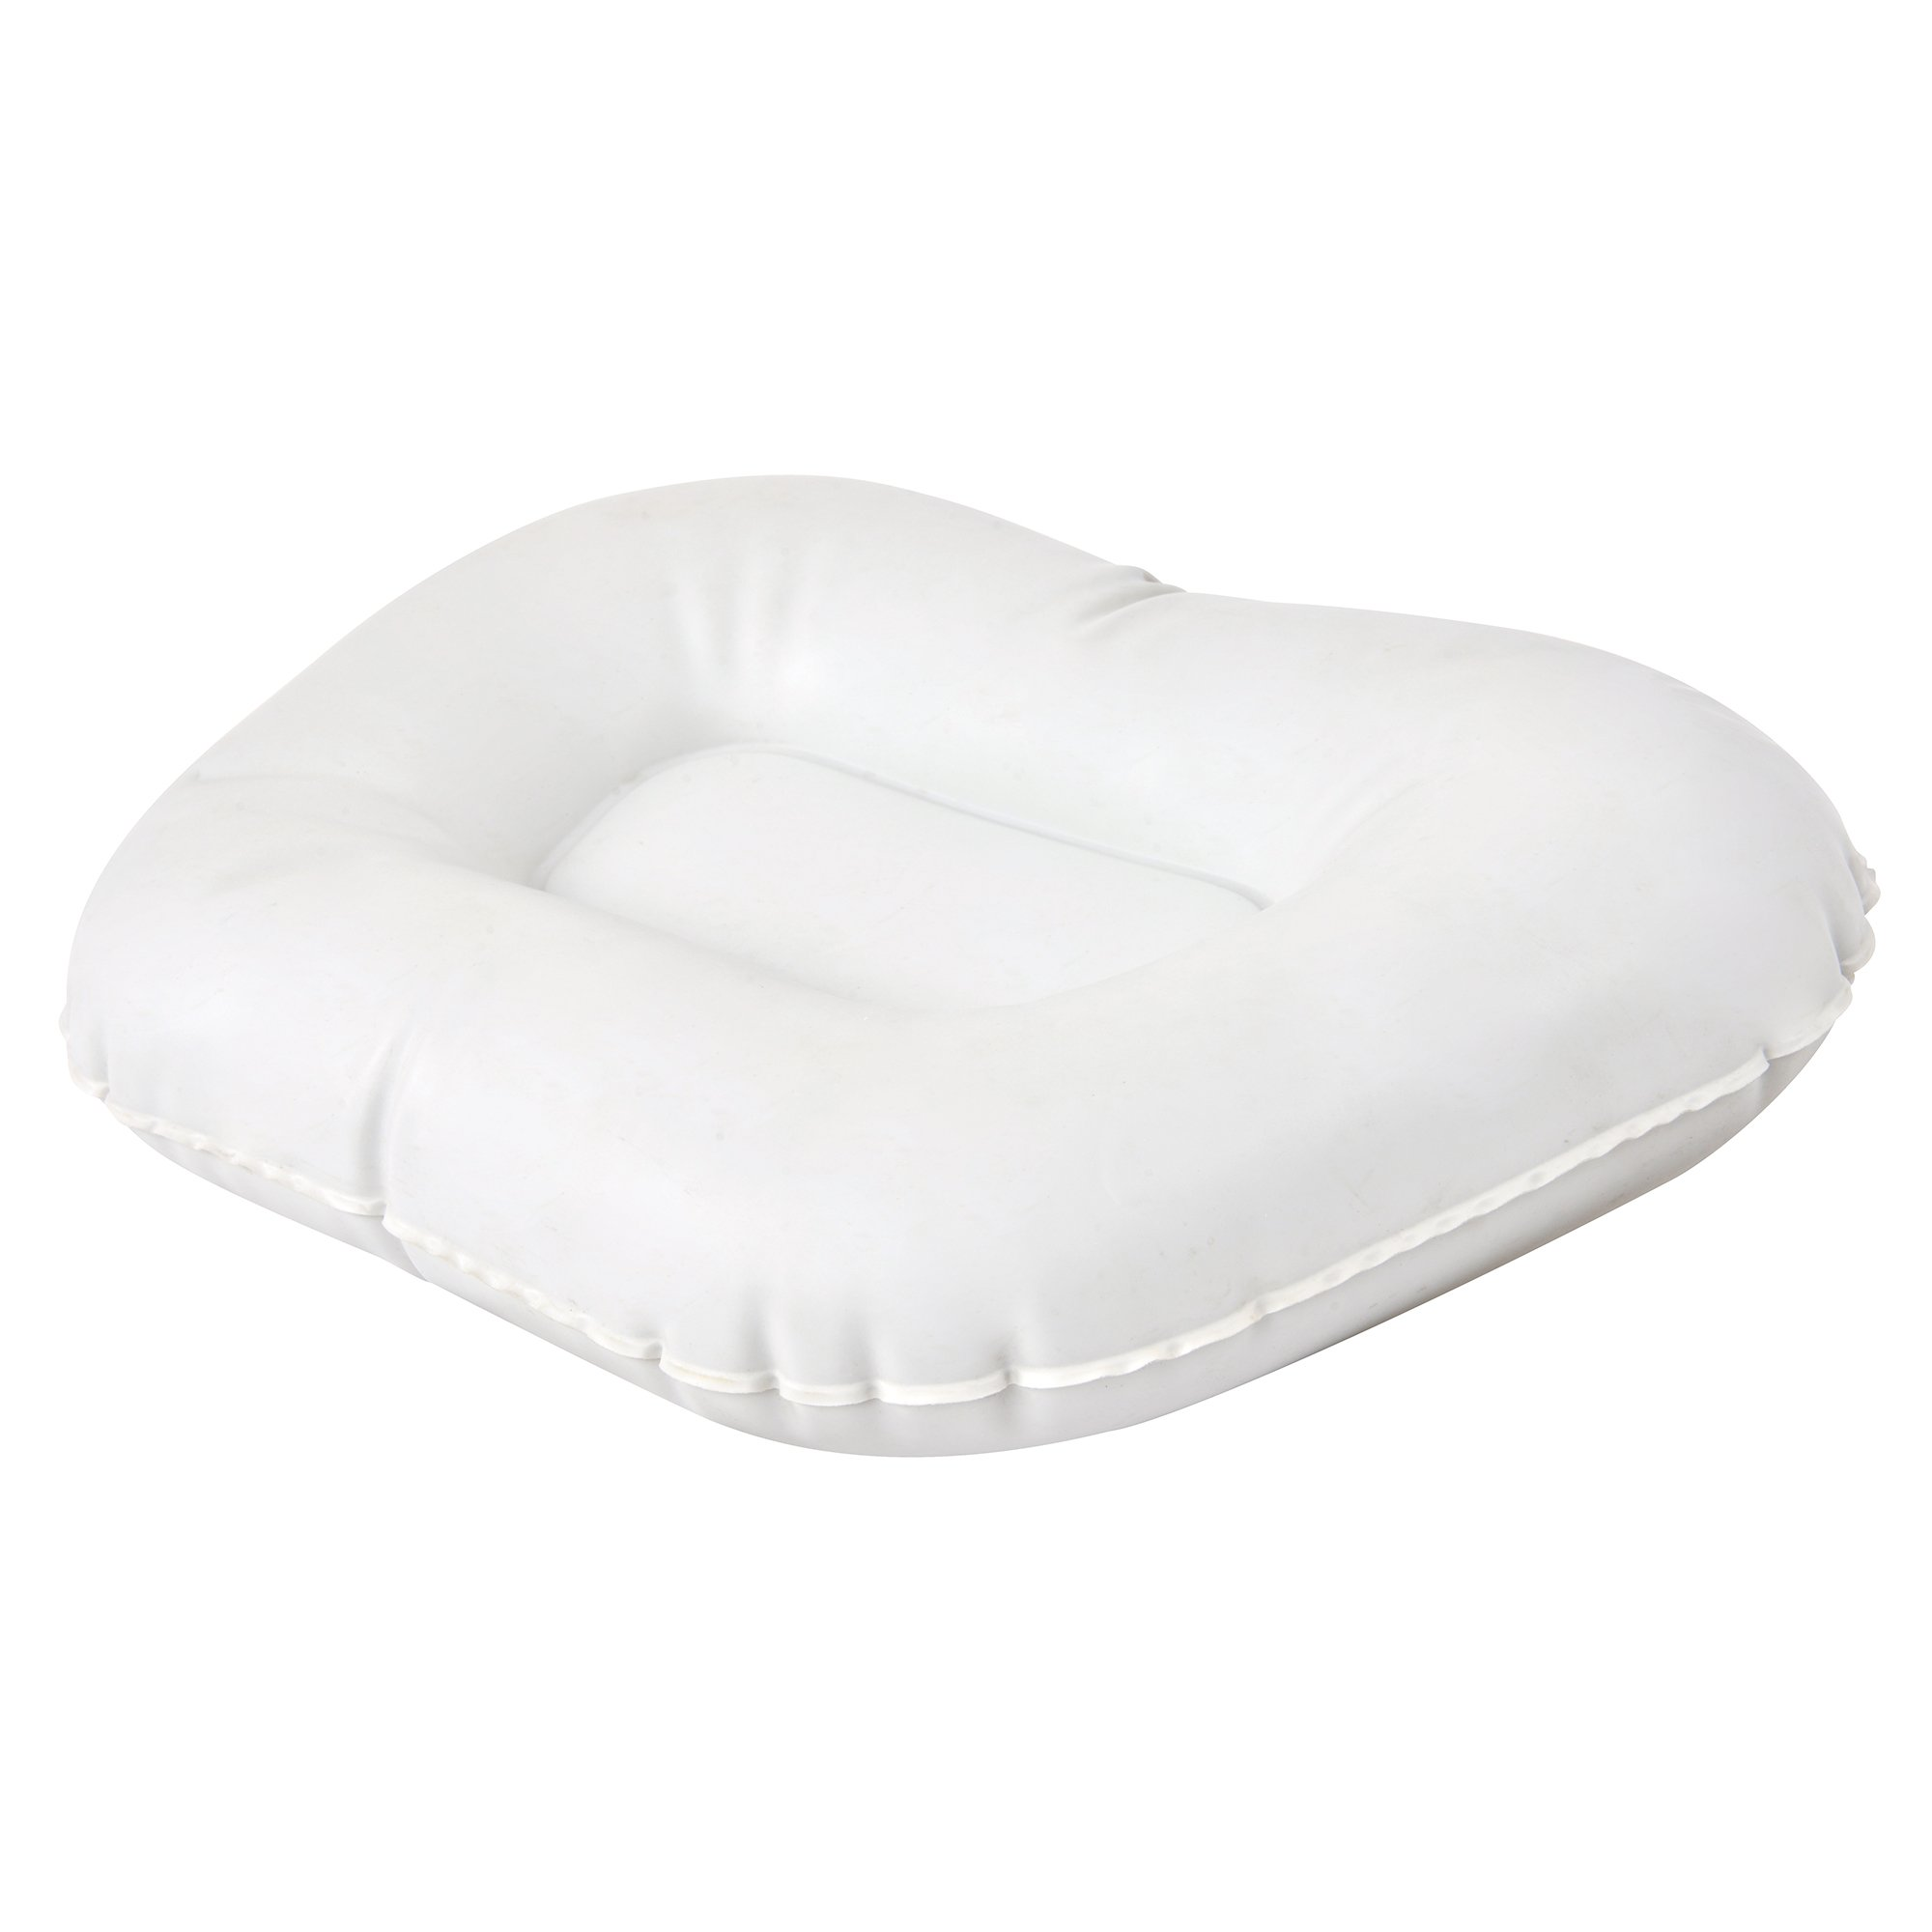 Blue Wave NP5335 Soft Comfort Spa Seat Cushion, White